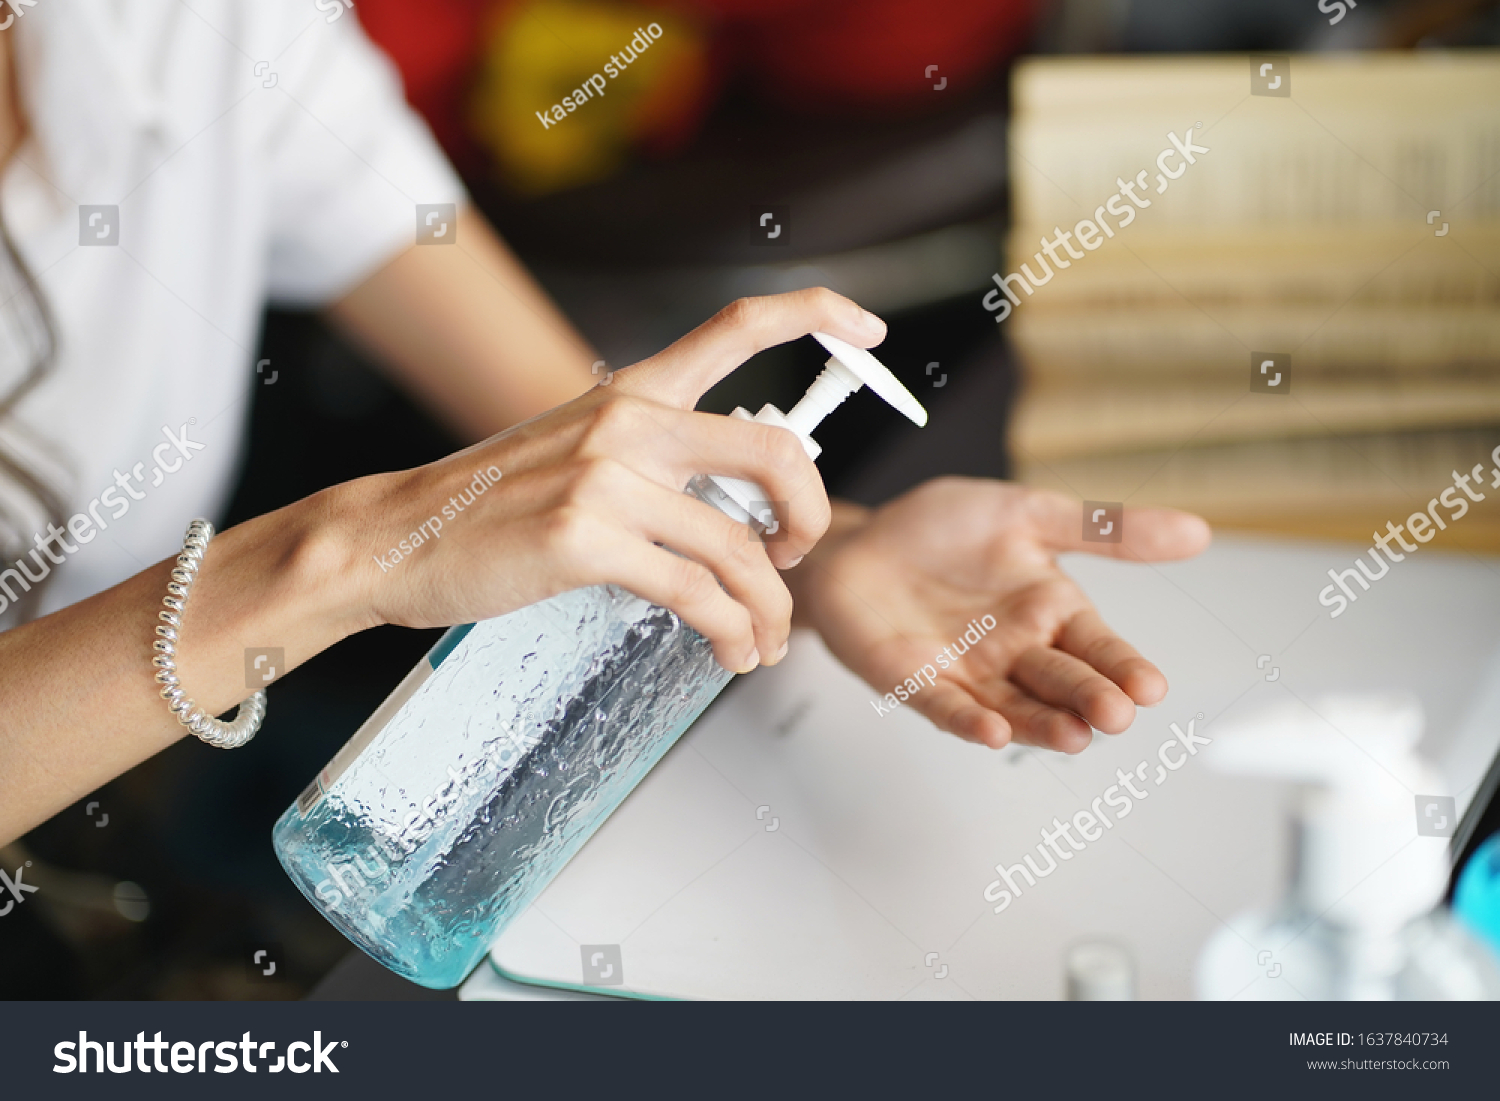 women washing hands with alcohol gel or antibacterial soap sanitizer after using a public restroom.Hygiene concept. prevent the spread of germs and bacteria and avoid infections corona virus           #1637840734